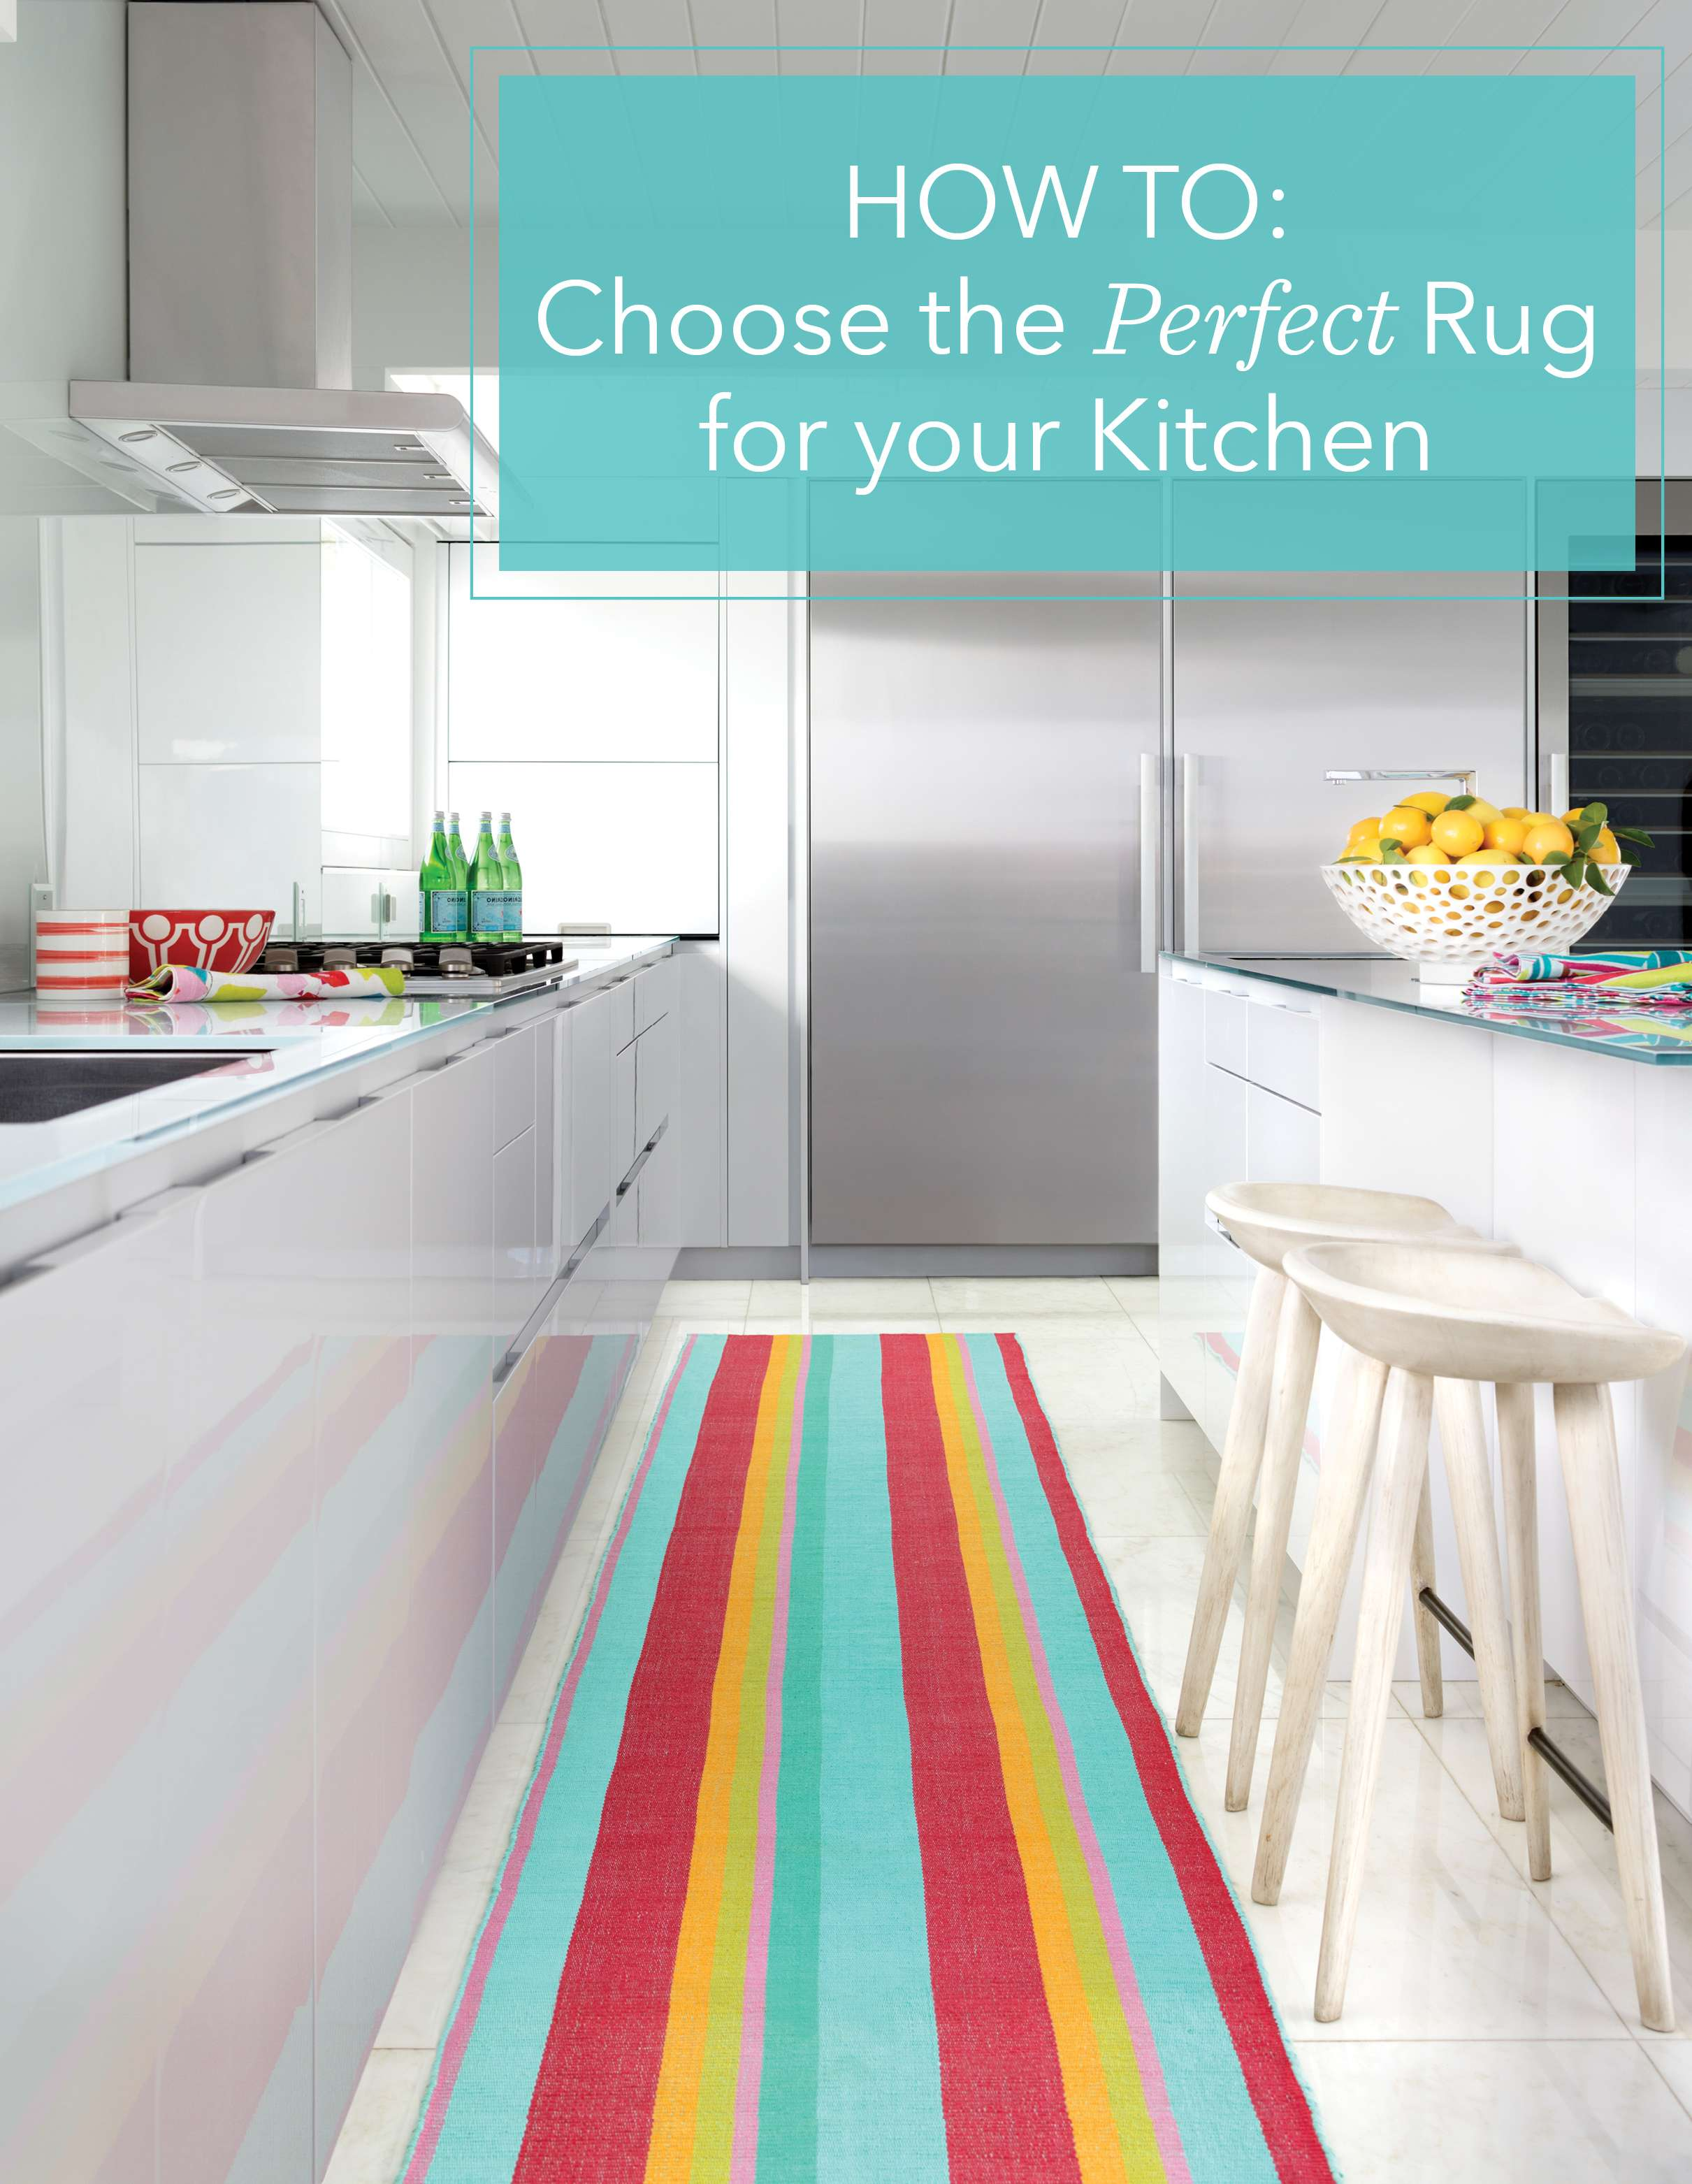 While You May Generally Shy Away Of The Idea Of Rugs In Your Kitchen Due To  The (inevitable) Possibility Of Spills And Other Messes, Incorporating A  Rug Or ...